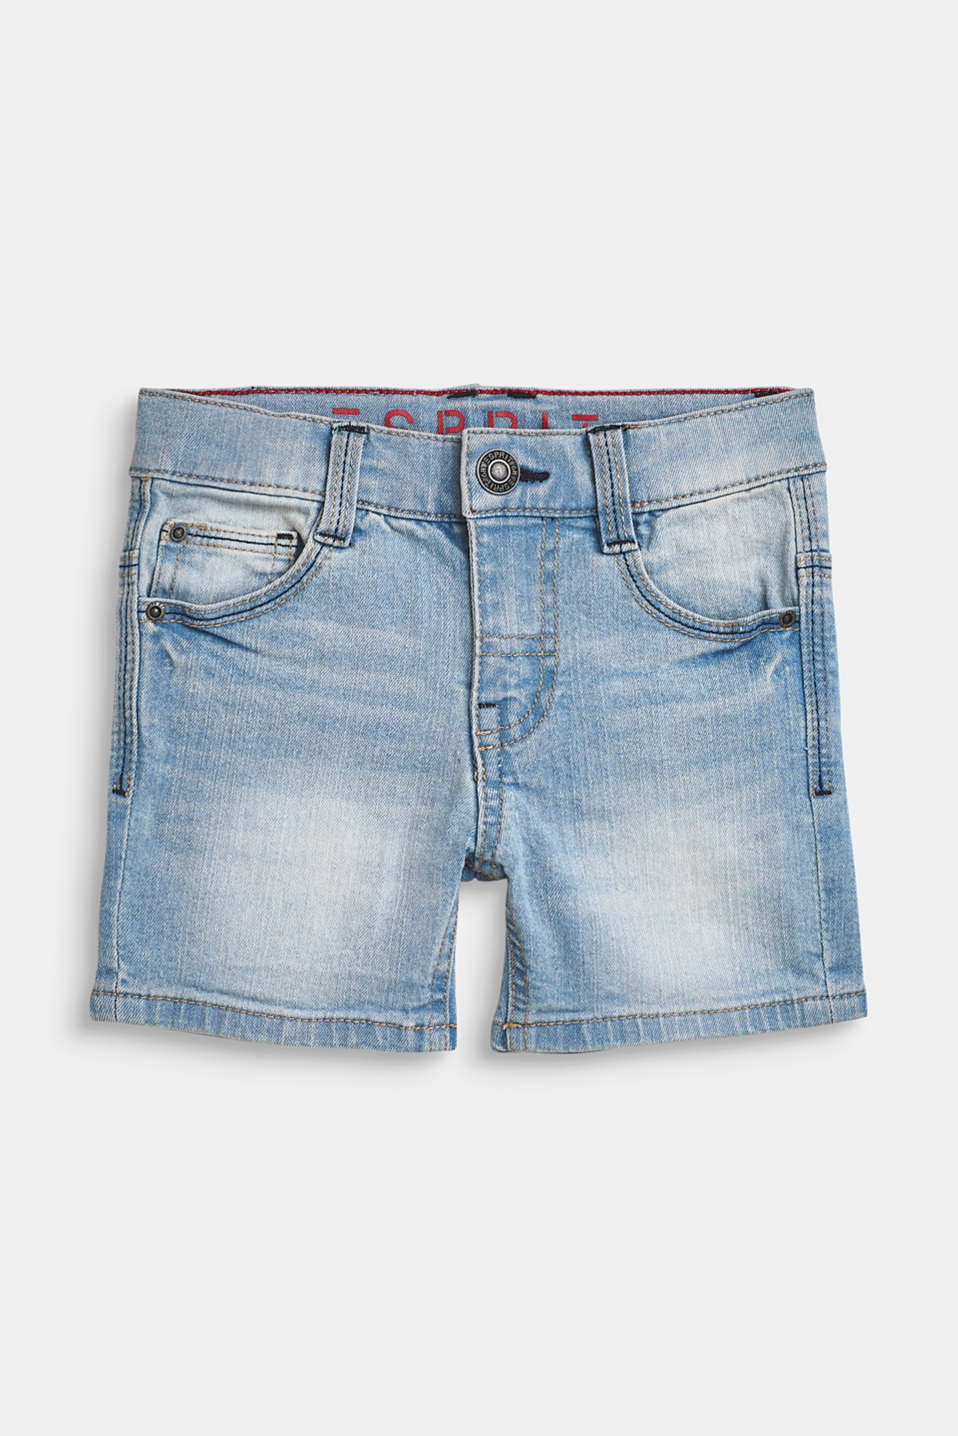 Esprit - Ultra stretchy denim shorts with a vintage garment wash